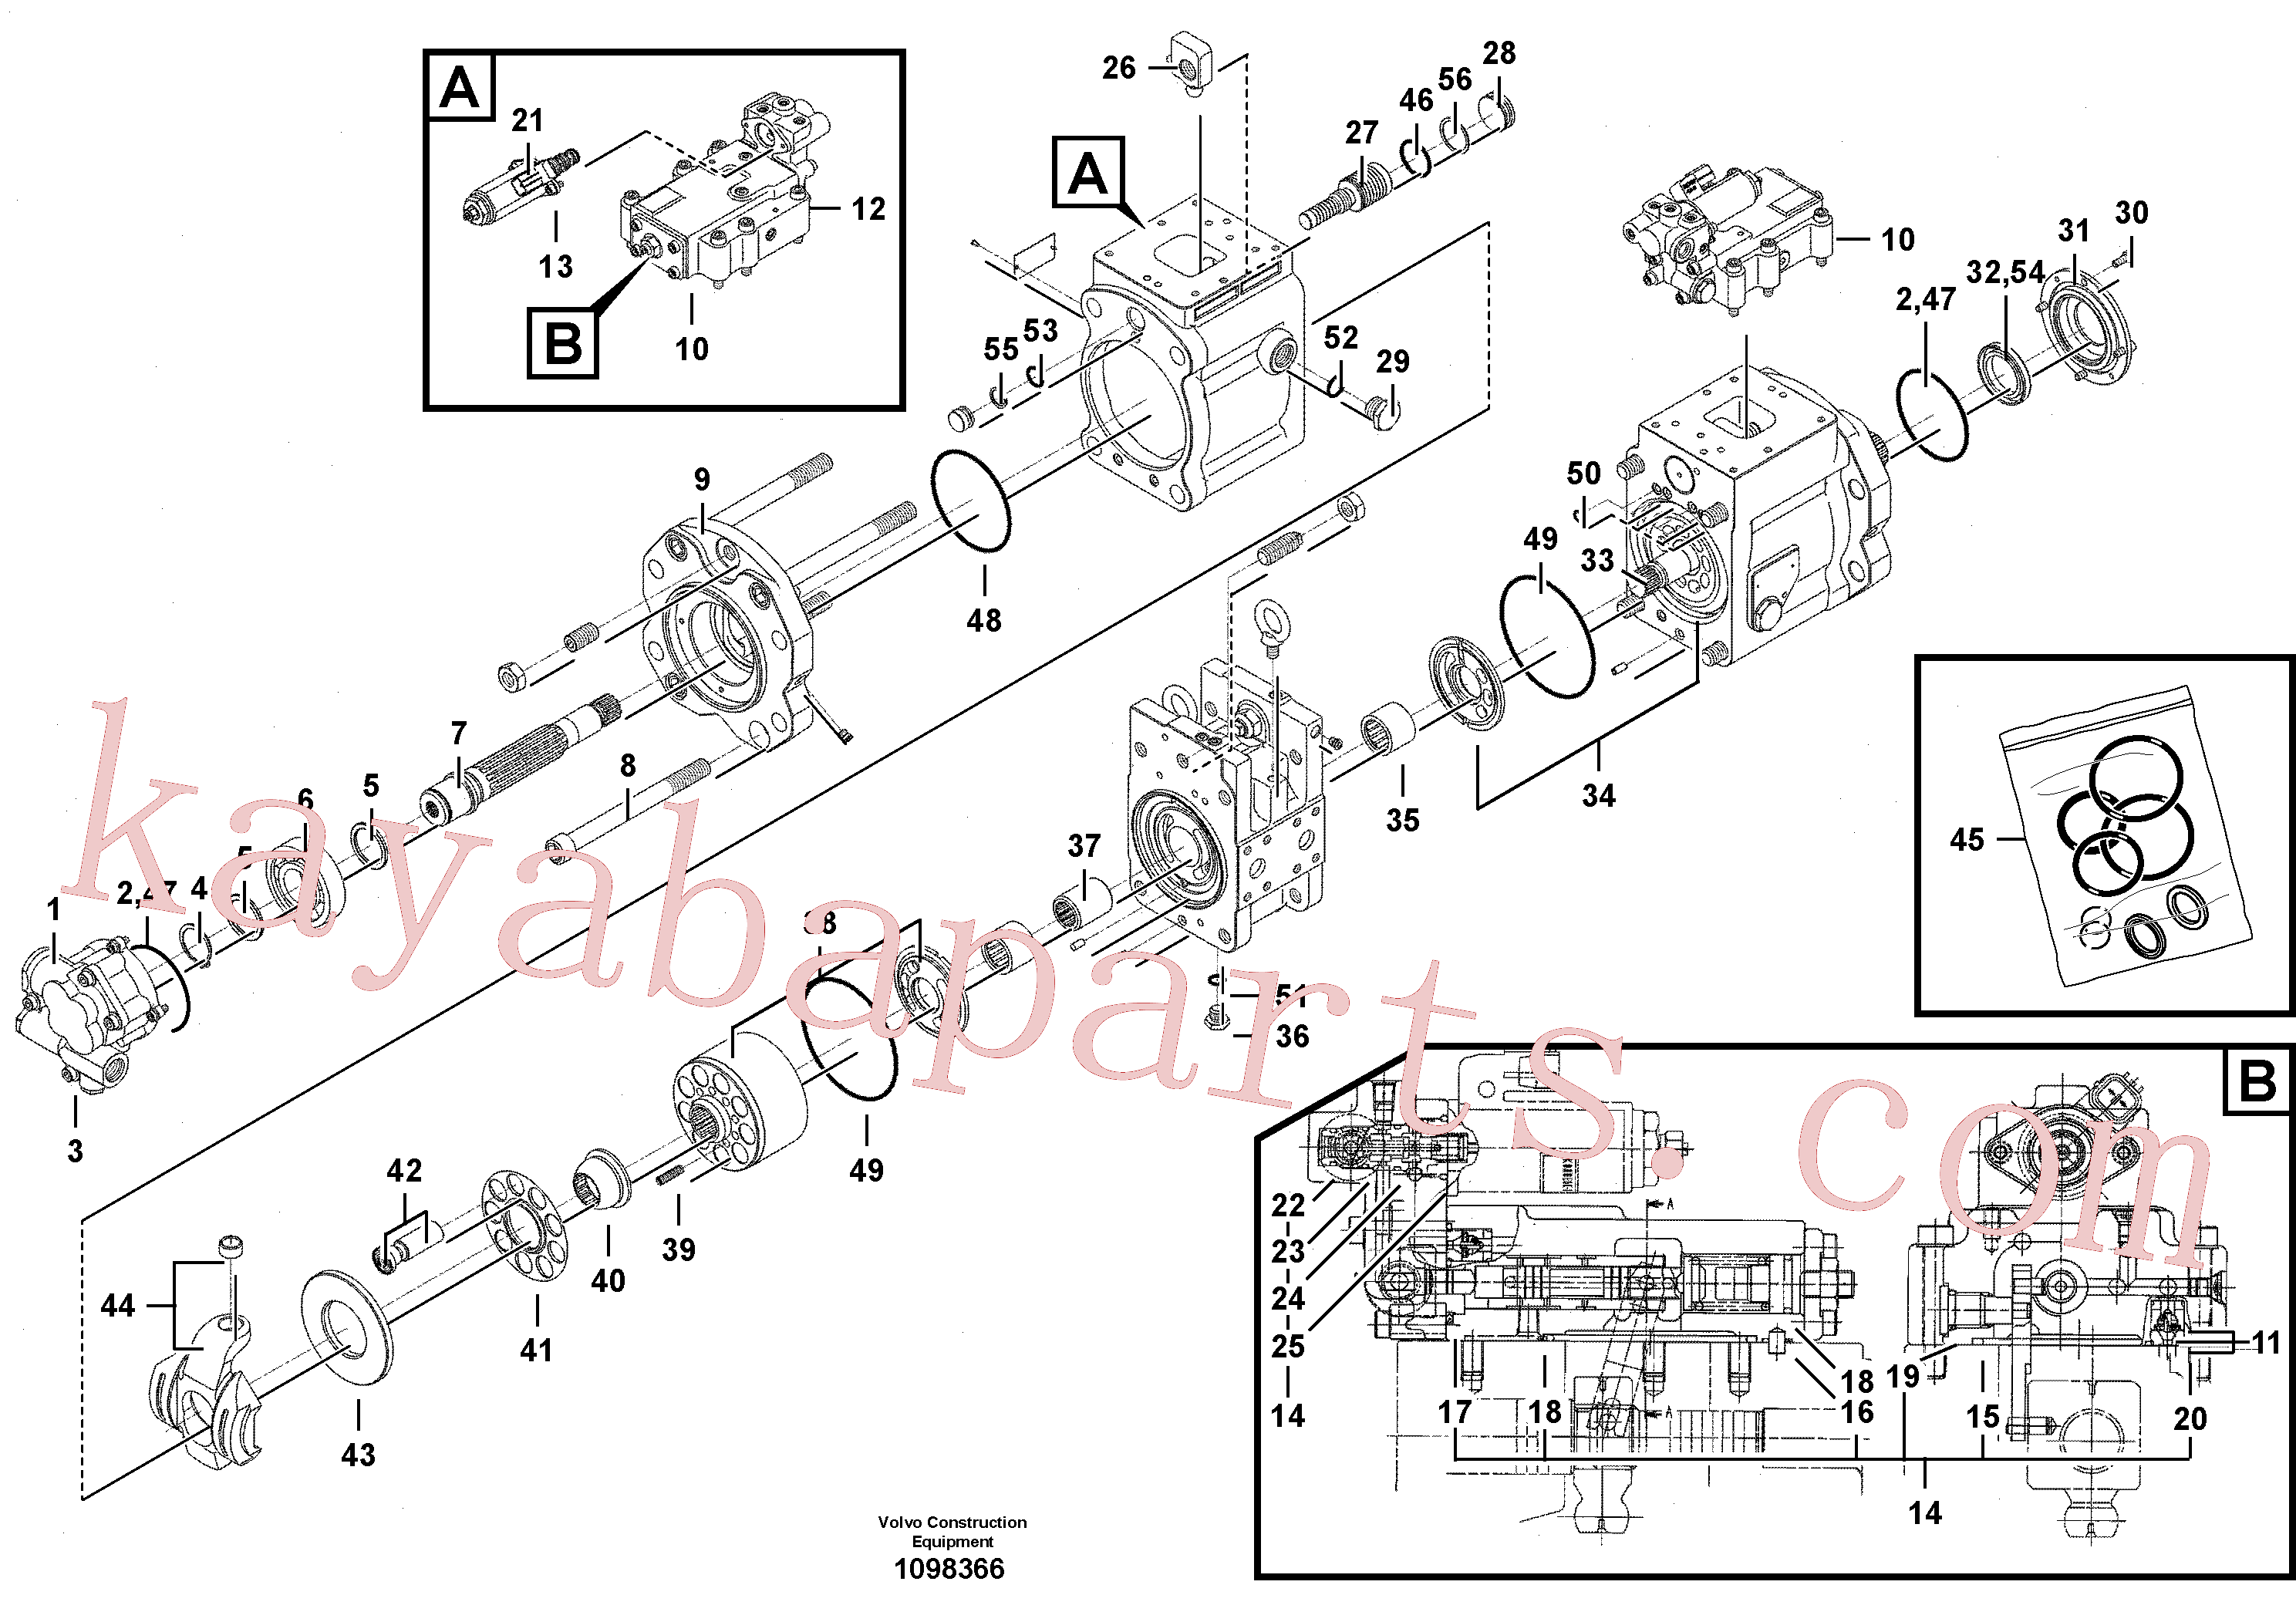 VOE14550190 for Volvo Pump installation(1098366 assembly)